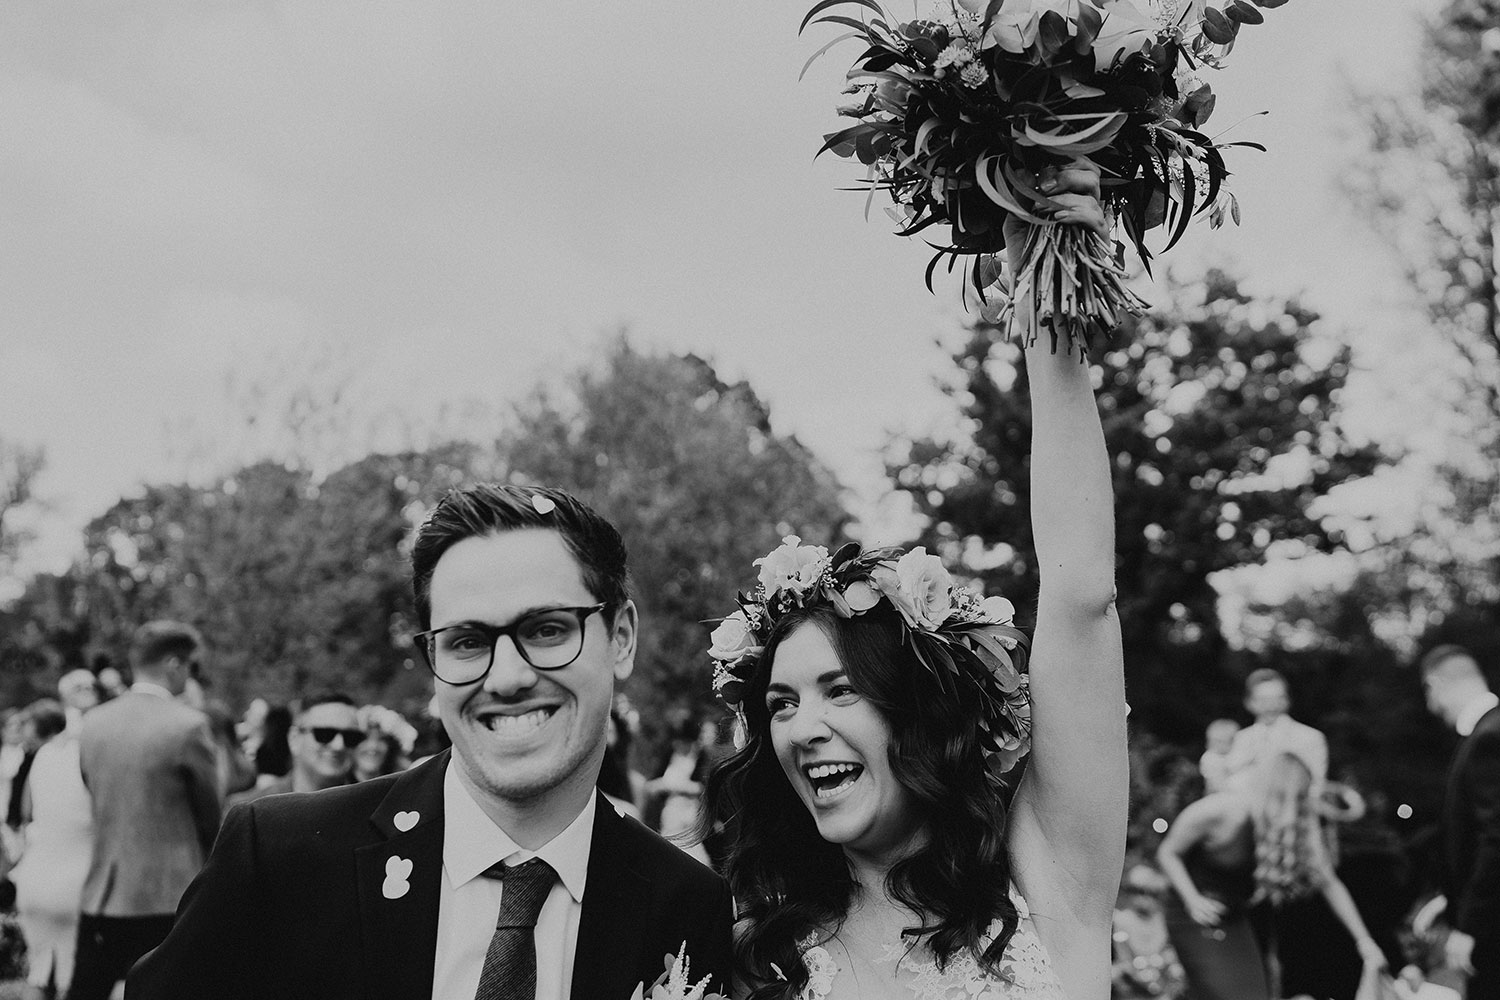 Black and white image of bride and groom as bride punches bouquet into the air in celebration